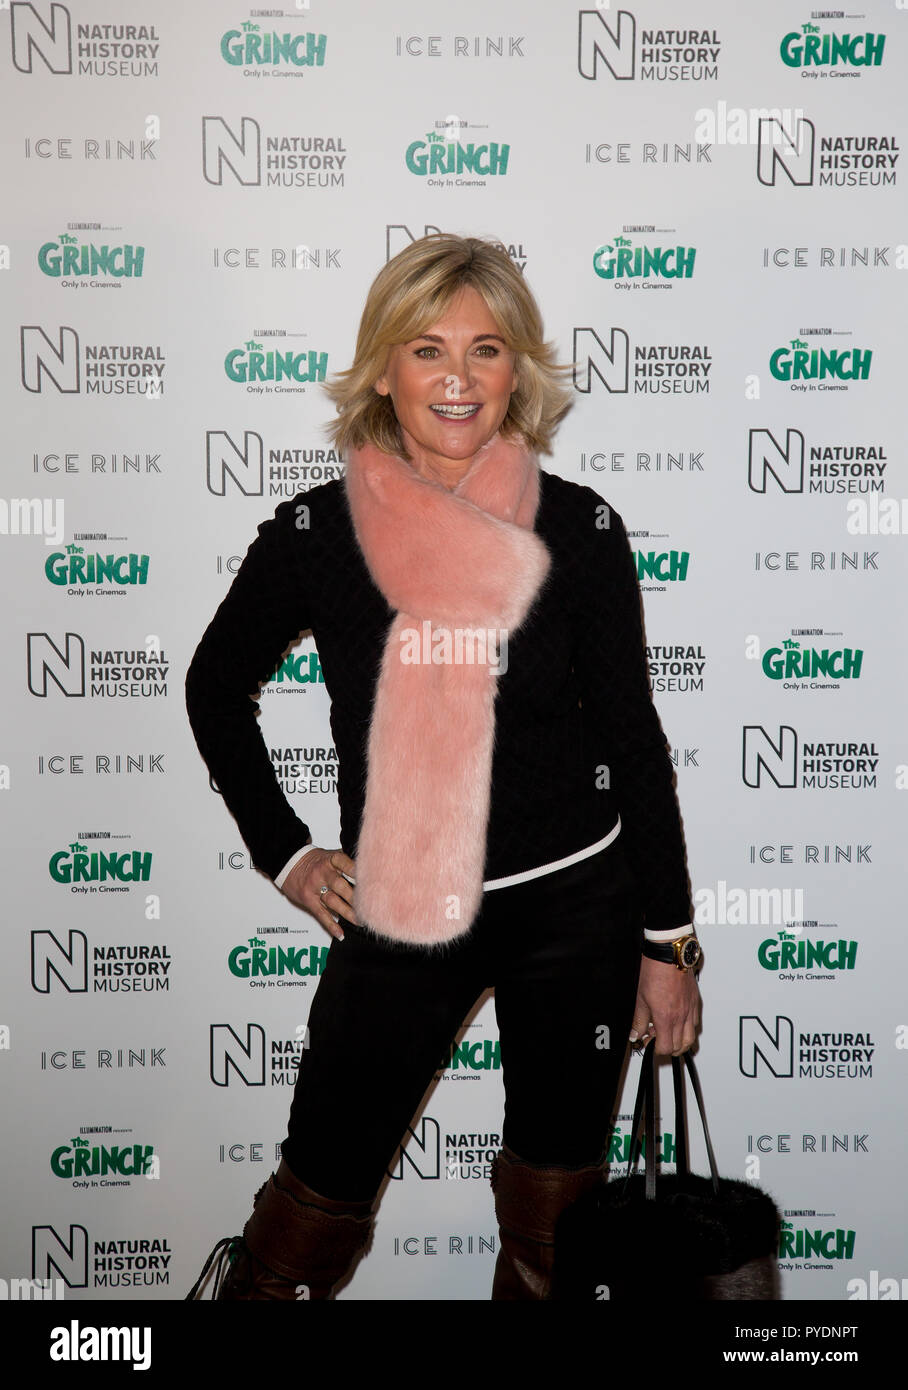 London Uk 24th October 2018 The Natural History Museum Kensington Anthea Turner attends the natural history museum ice rink launch evening - Stock Image